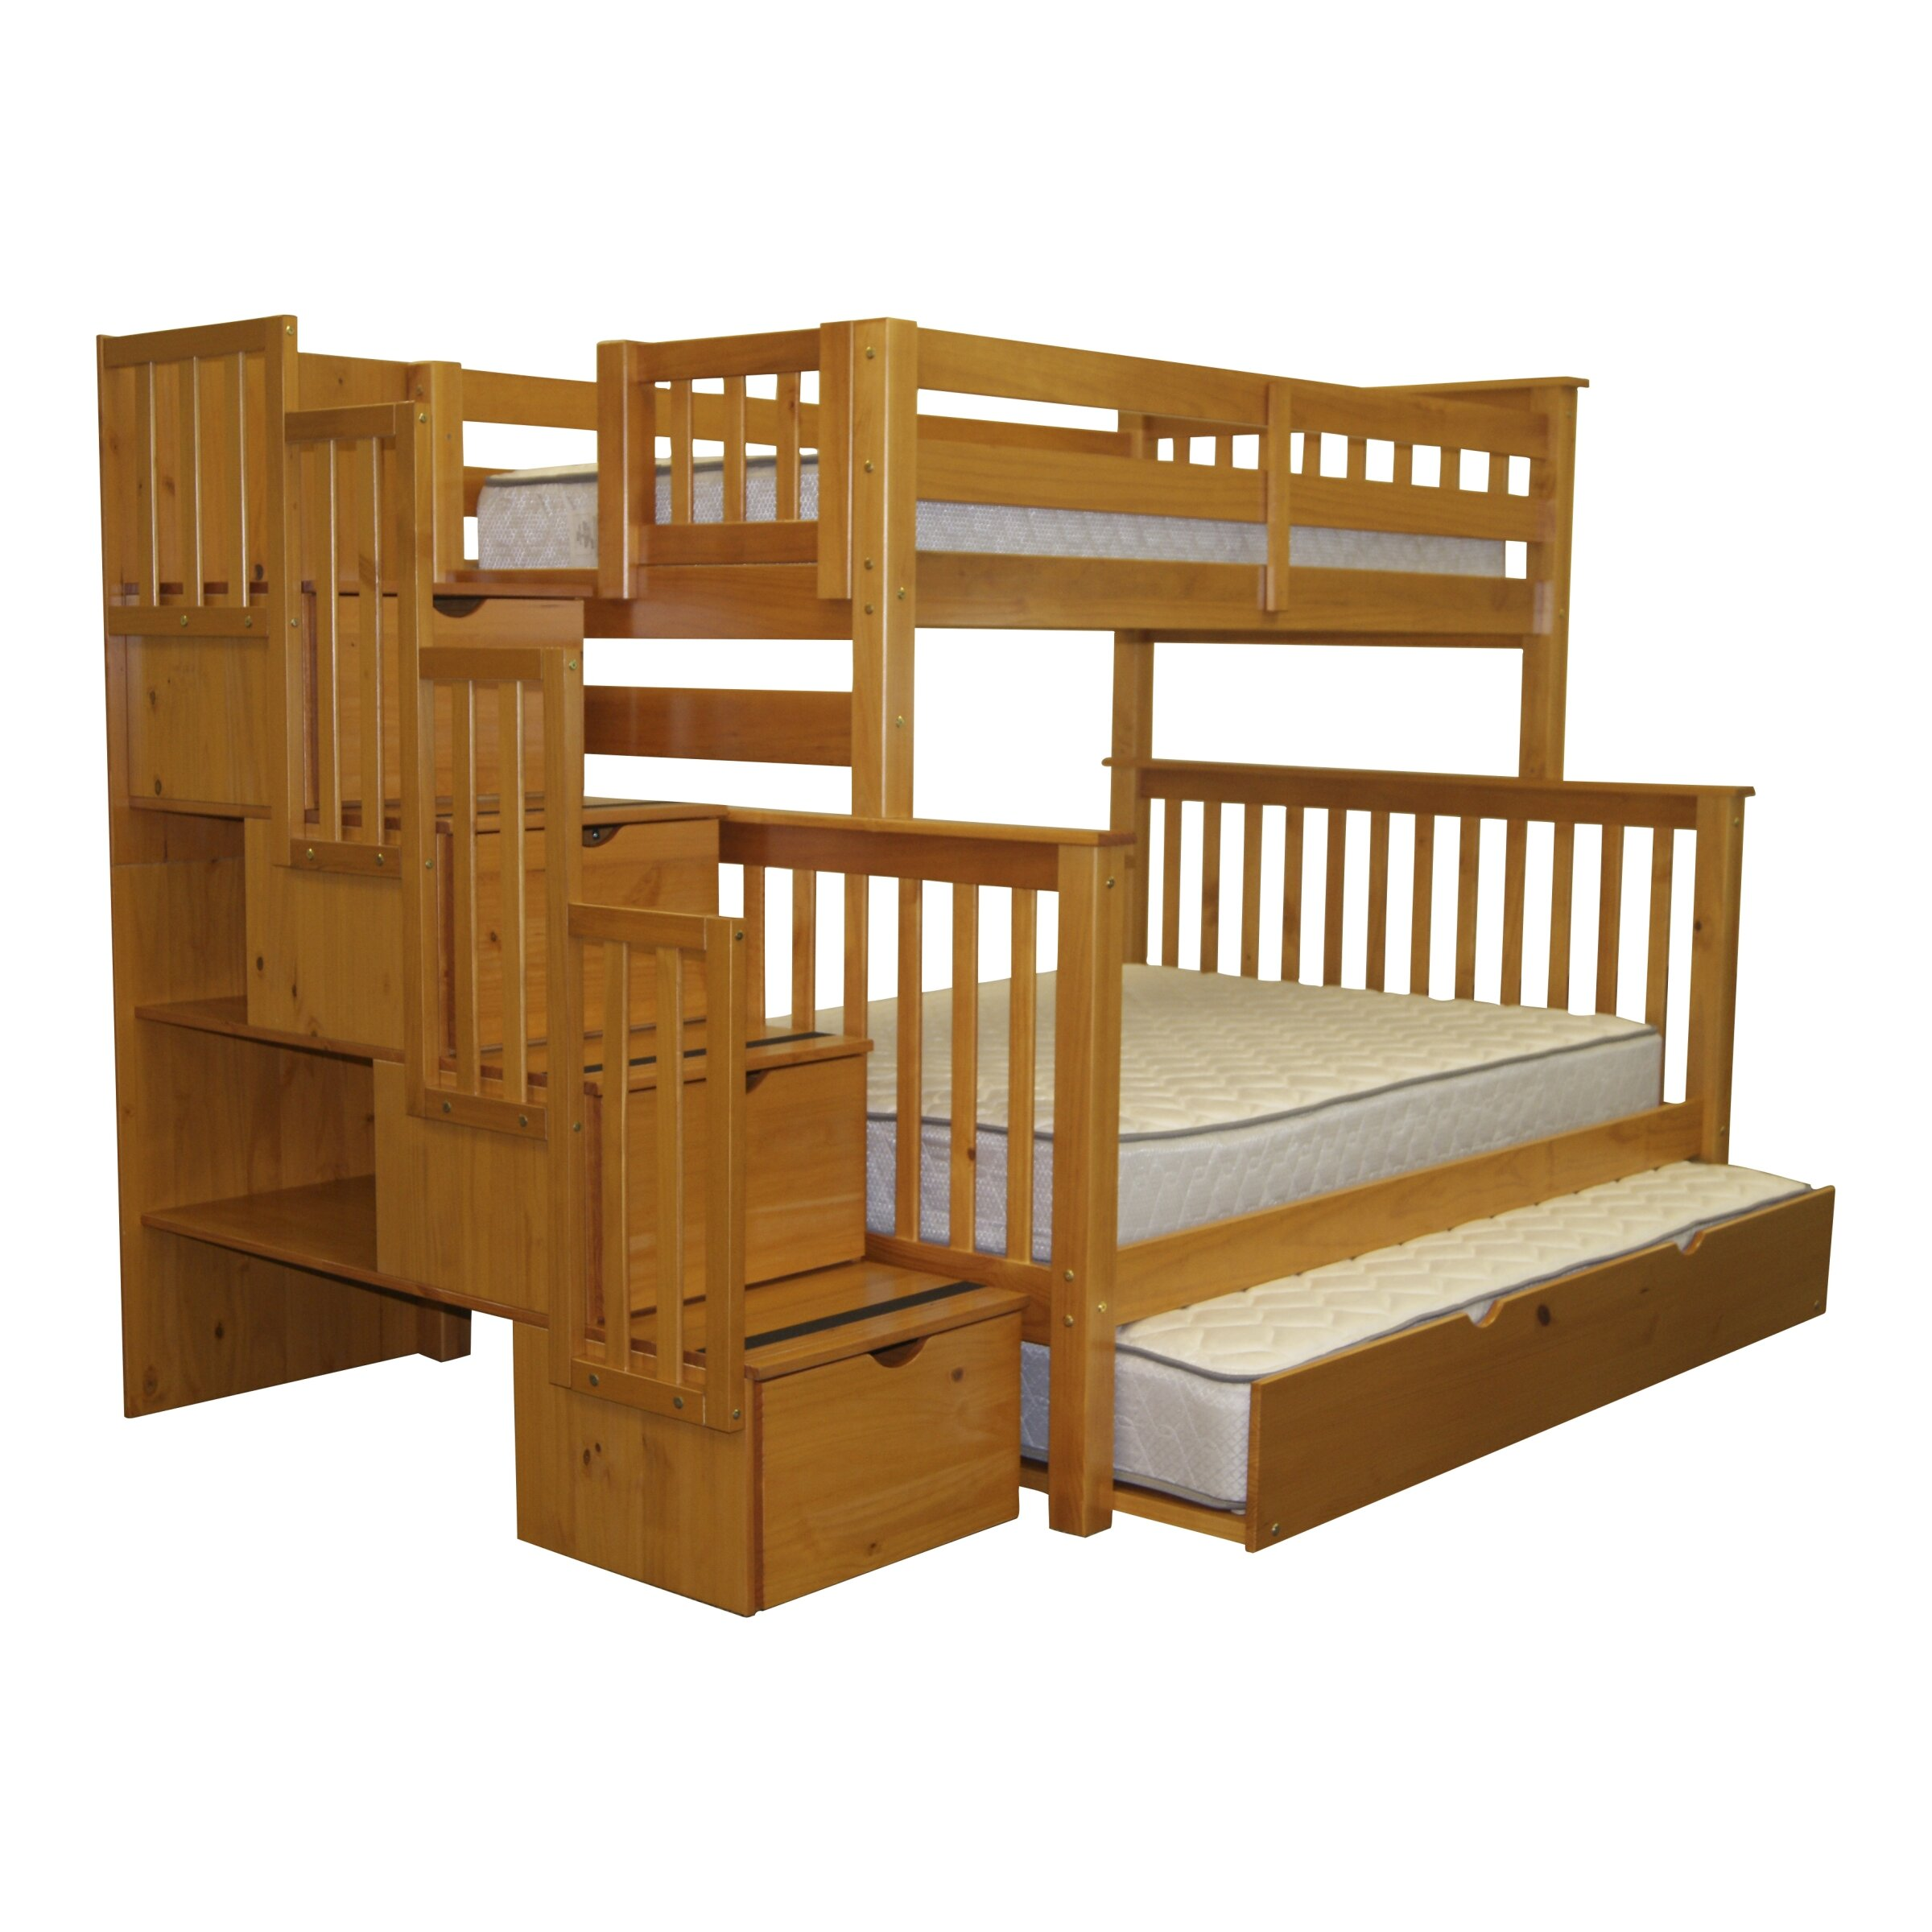 Trundle Bed King Single Storage Desk